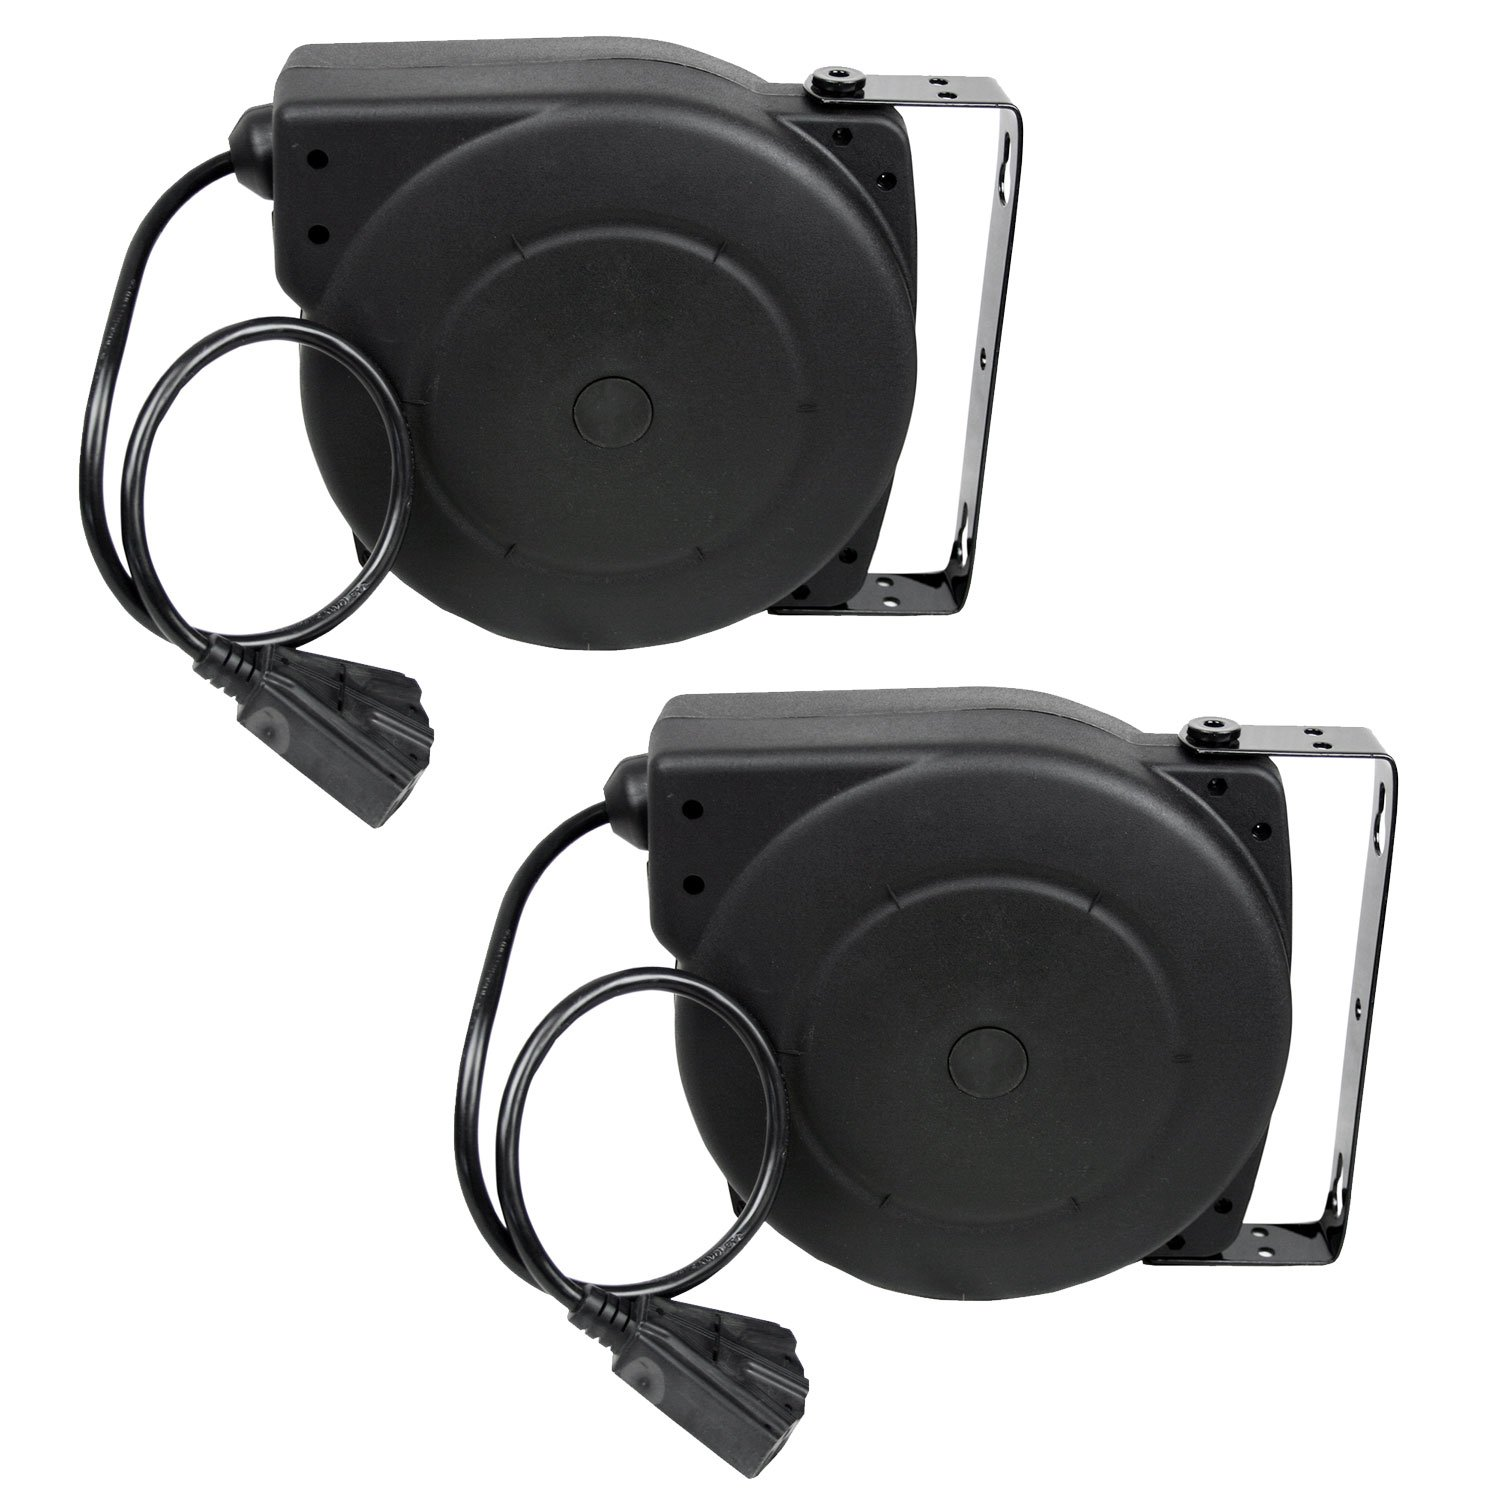 Alemite 7262-A 40-Feet 12/3 Retractable Extension Cord Reel, 2-Pack